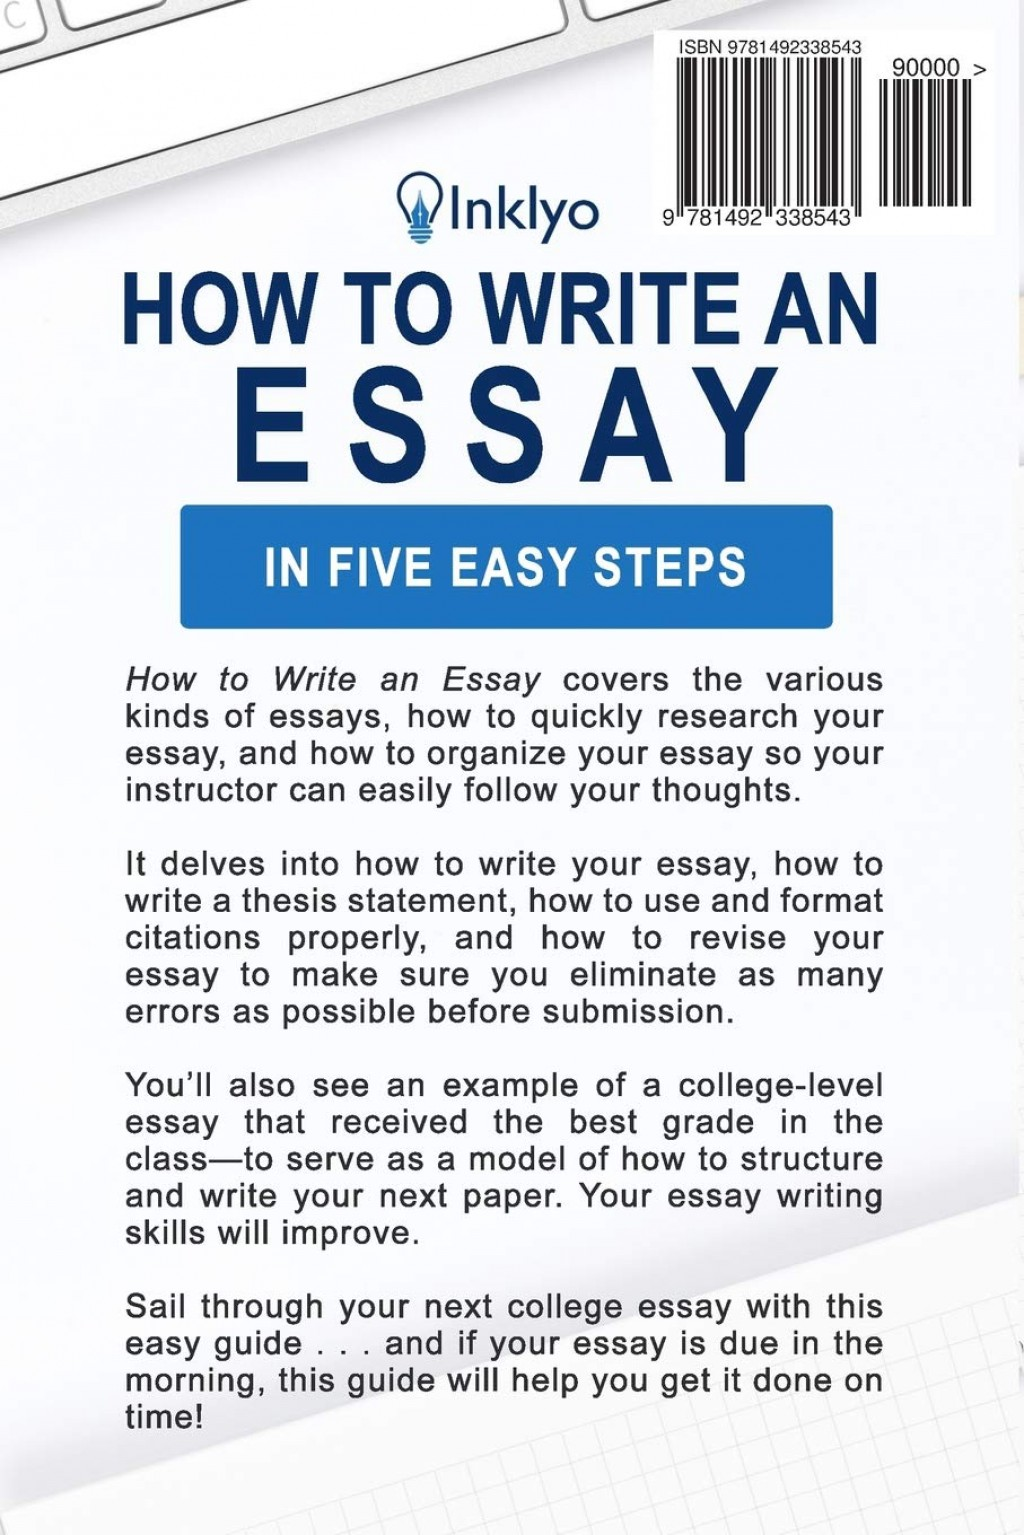 002 How To Write An Essay Example Shocking In Mla Format 2018 Introduction For College Paper Apa Large